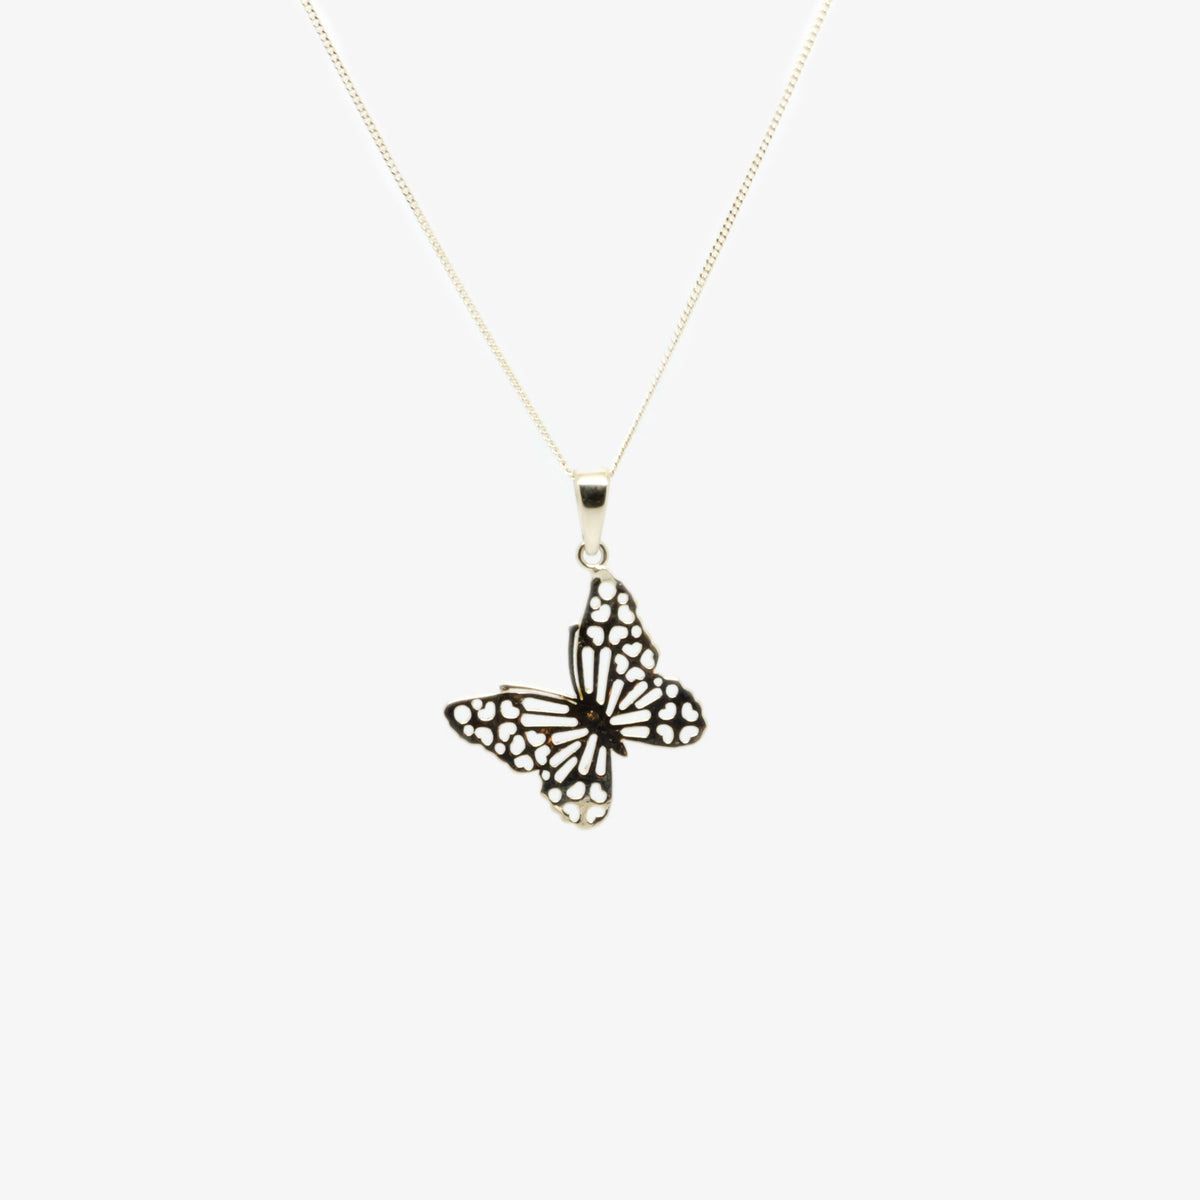 Front view picture of the silver butterfly pendant neckalce.